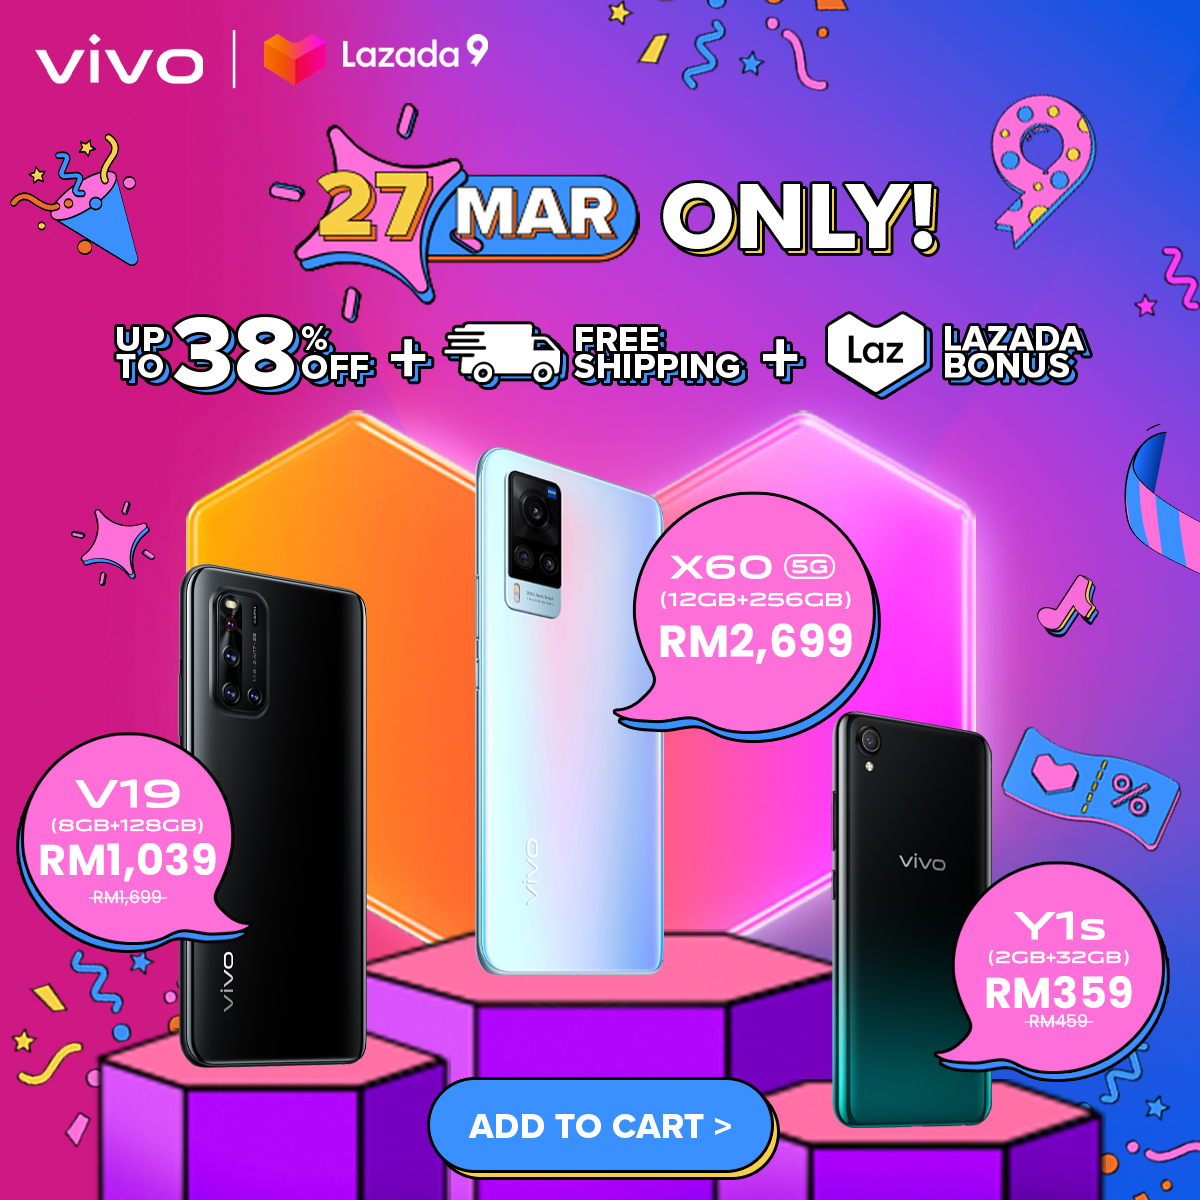 vivo Offers Smartphone Mega Sales on 27 March in Conjunction With Lazada's Birthday